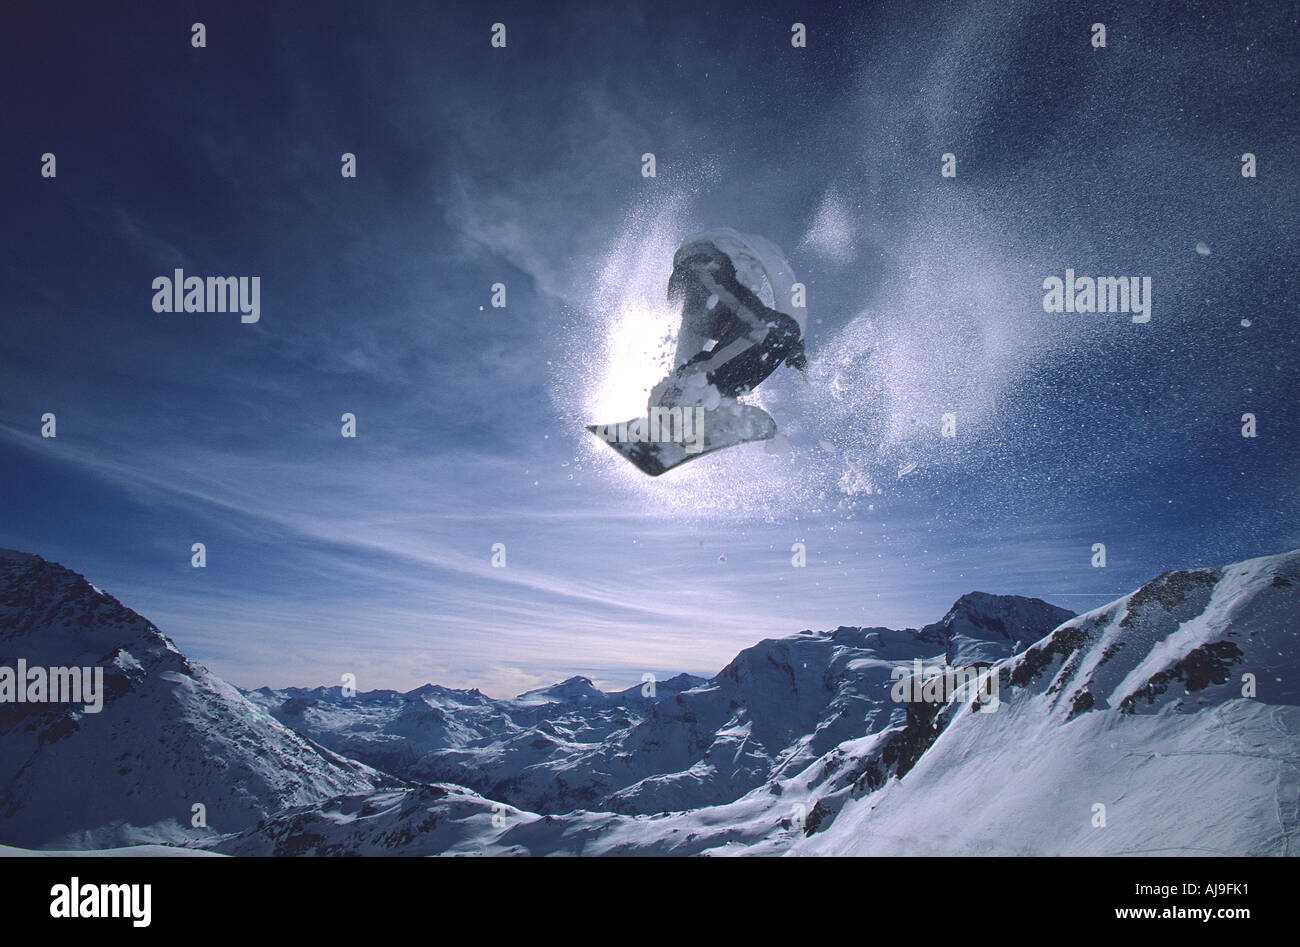 Snowboarder flies into the sun in Les Arcs French Alps - Stock Image